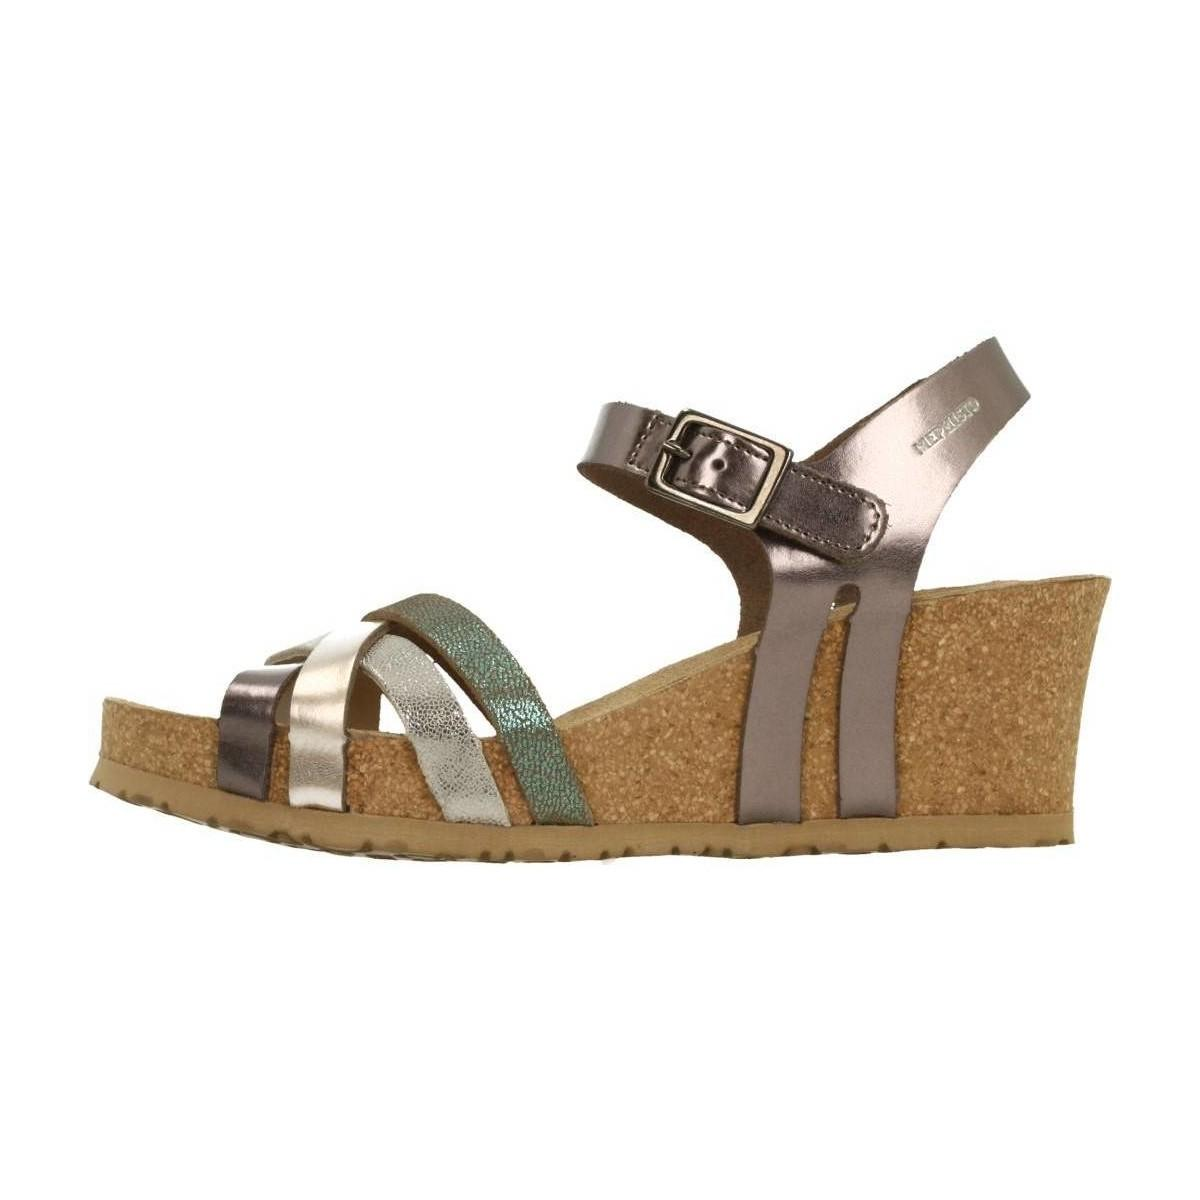 9a37df08fcb3ae Mephisto - Multicolor Lanny Star Women s Sandals In Other - Lyst. View  fullscreen